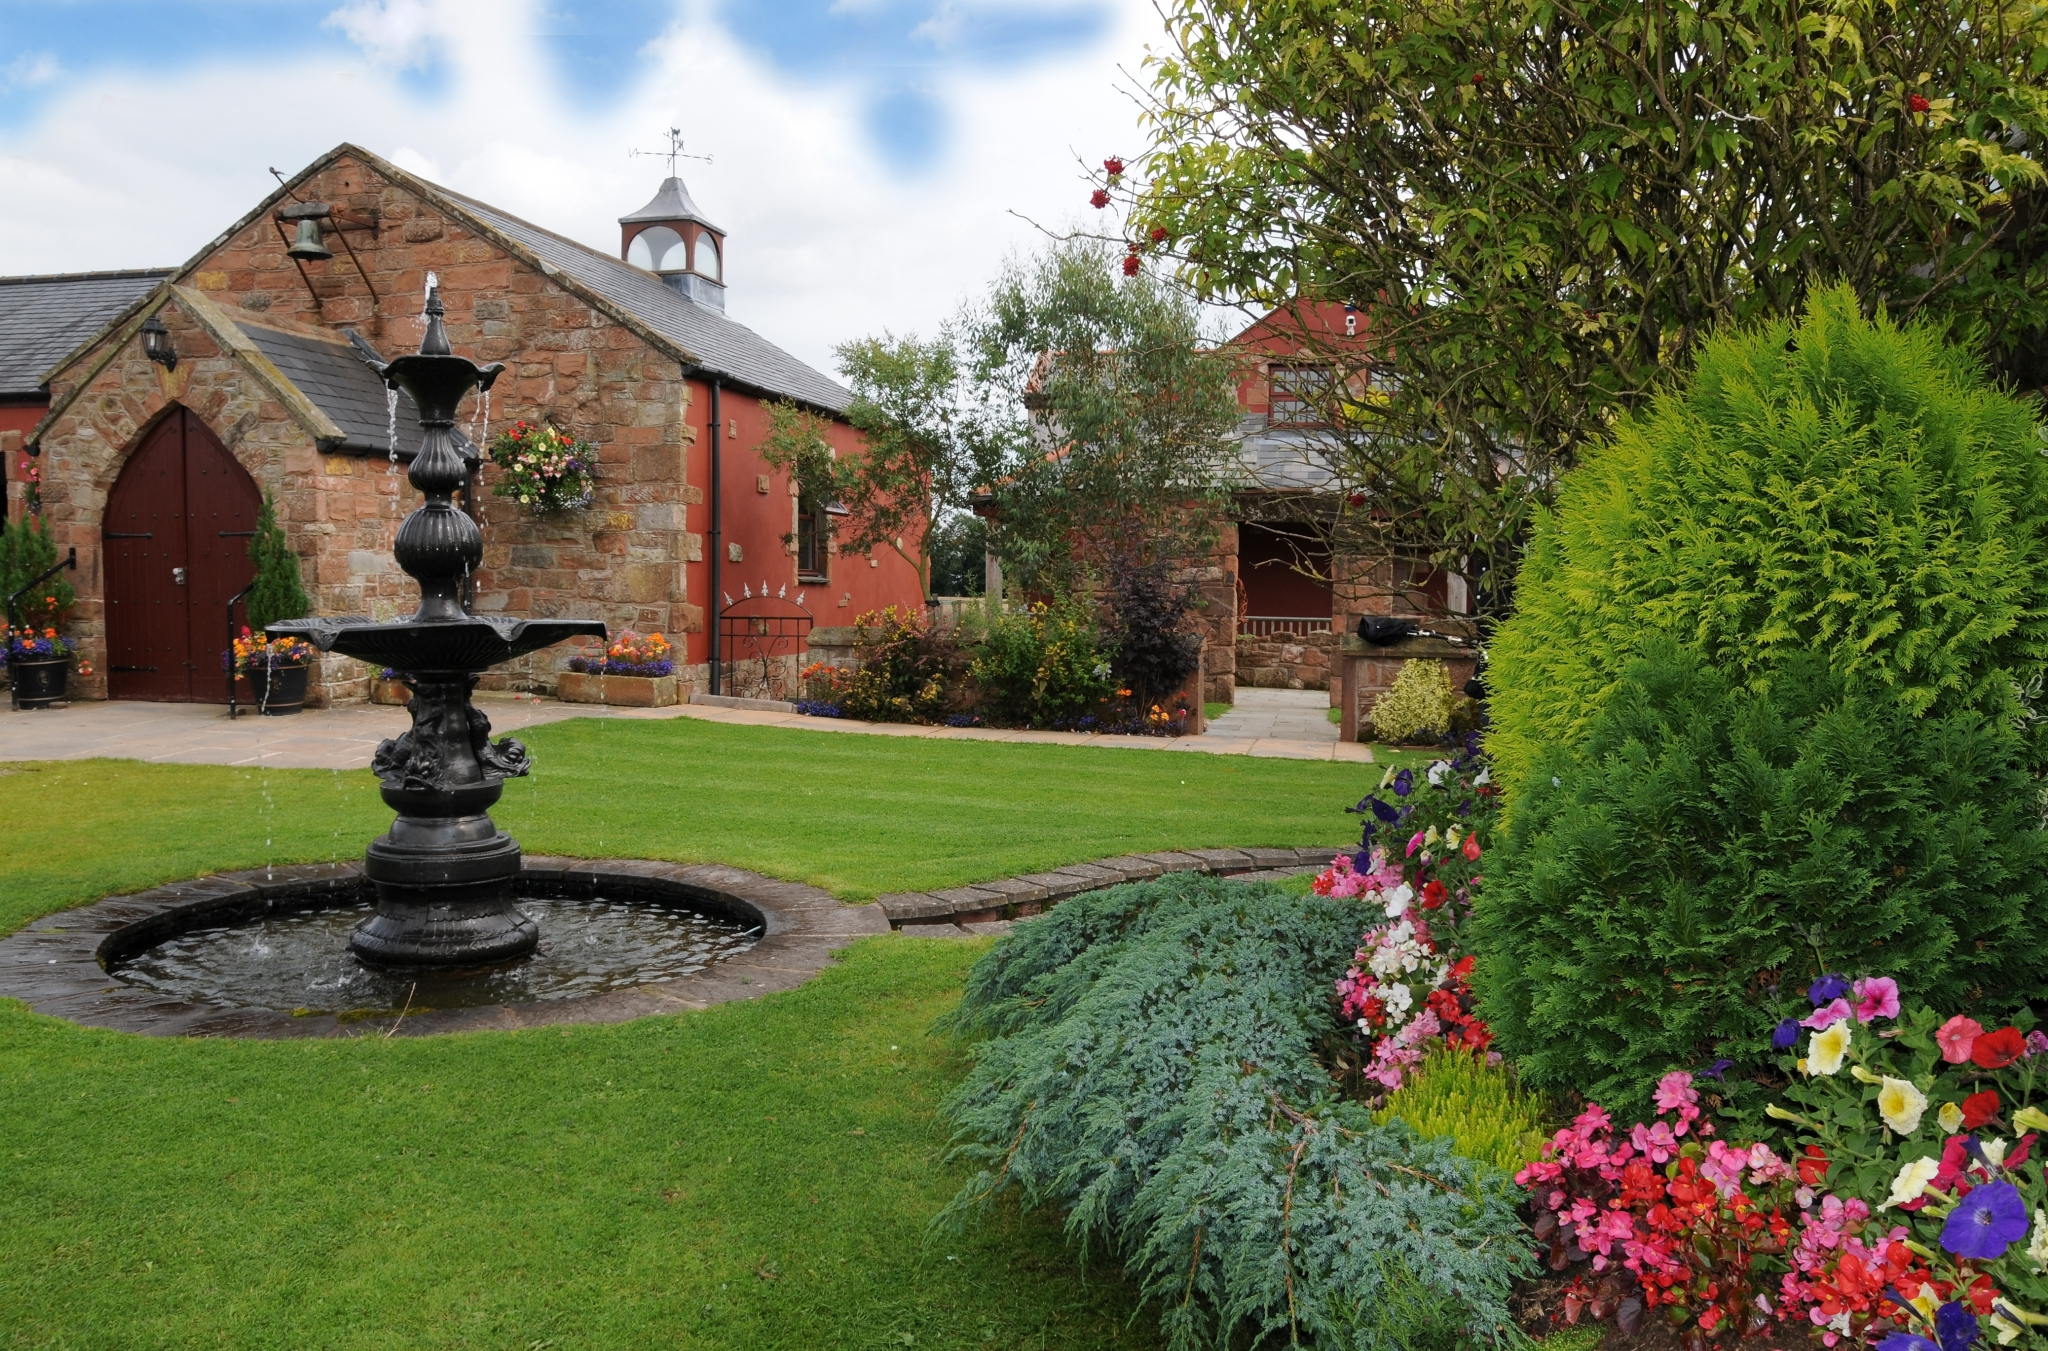 Gretna Green Wedding Venue Reviews for The Mill Forge Hotel